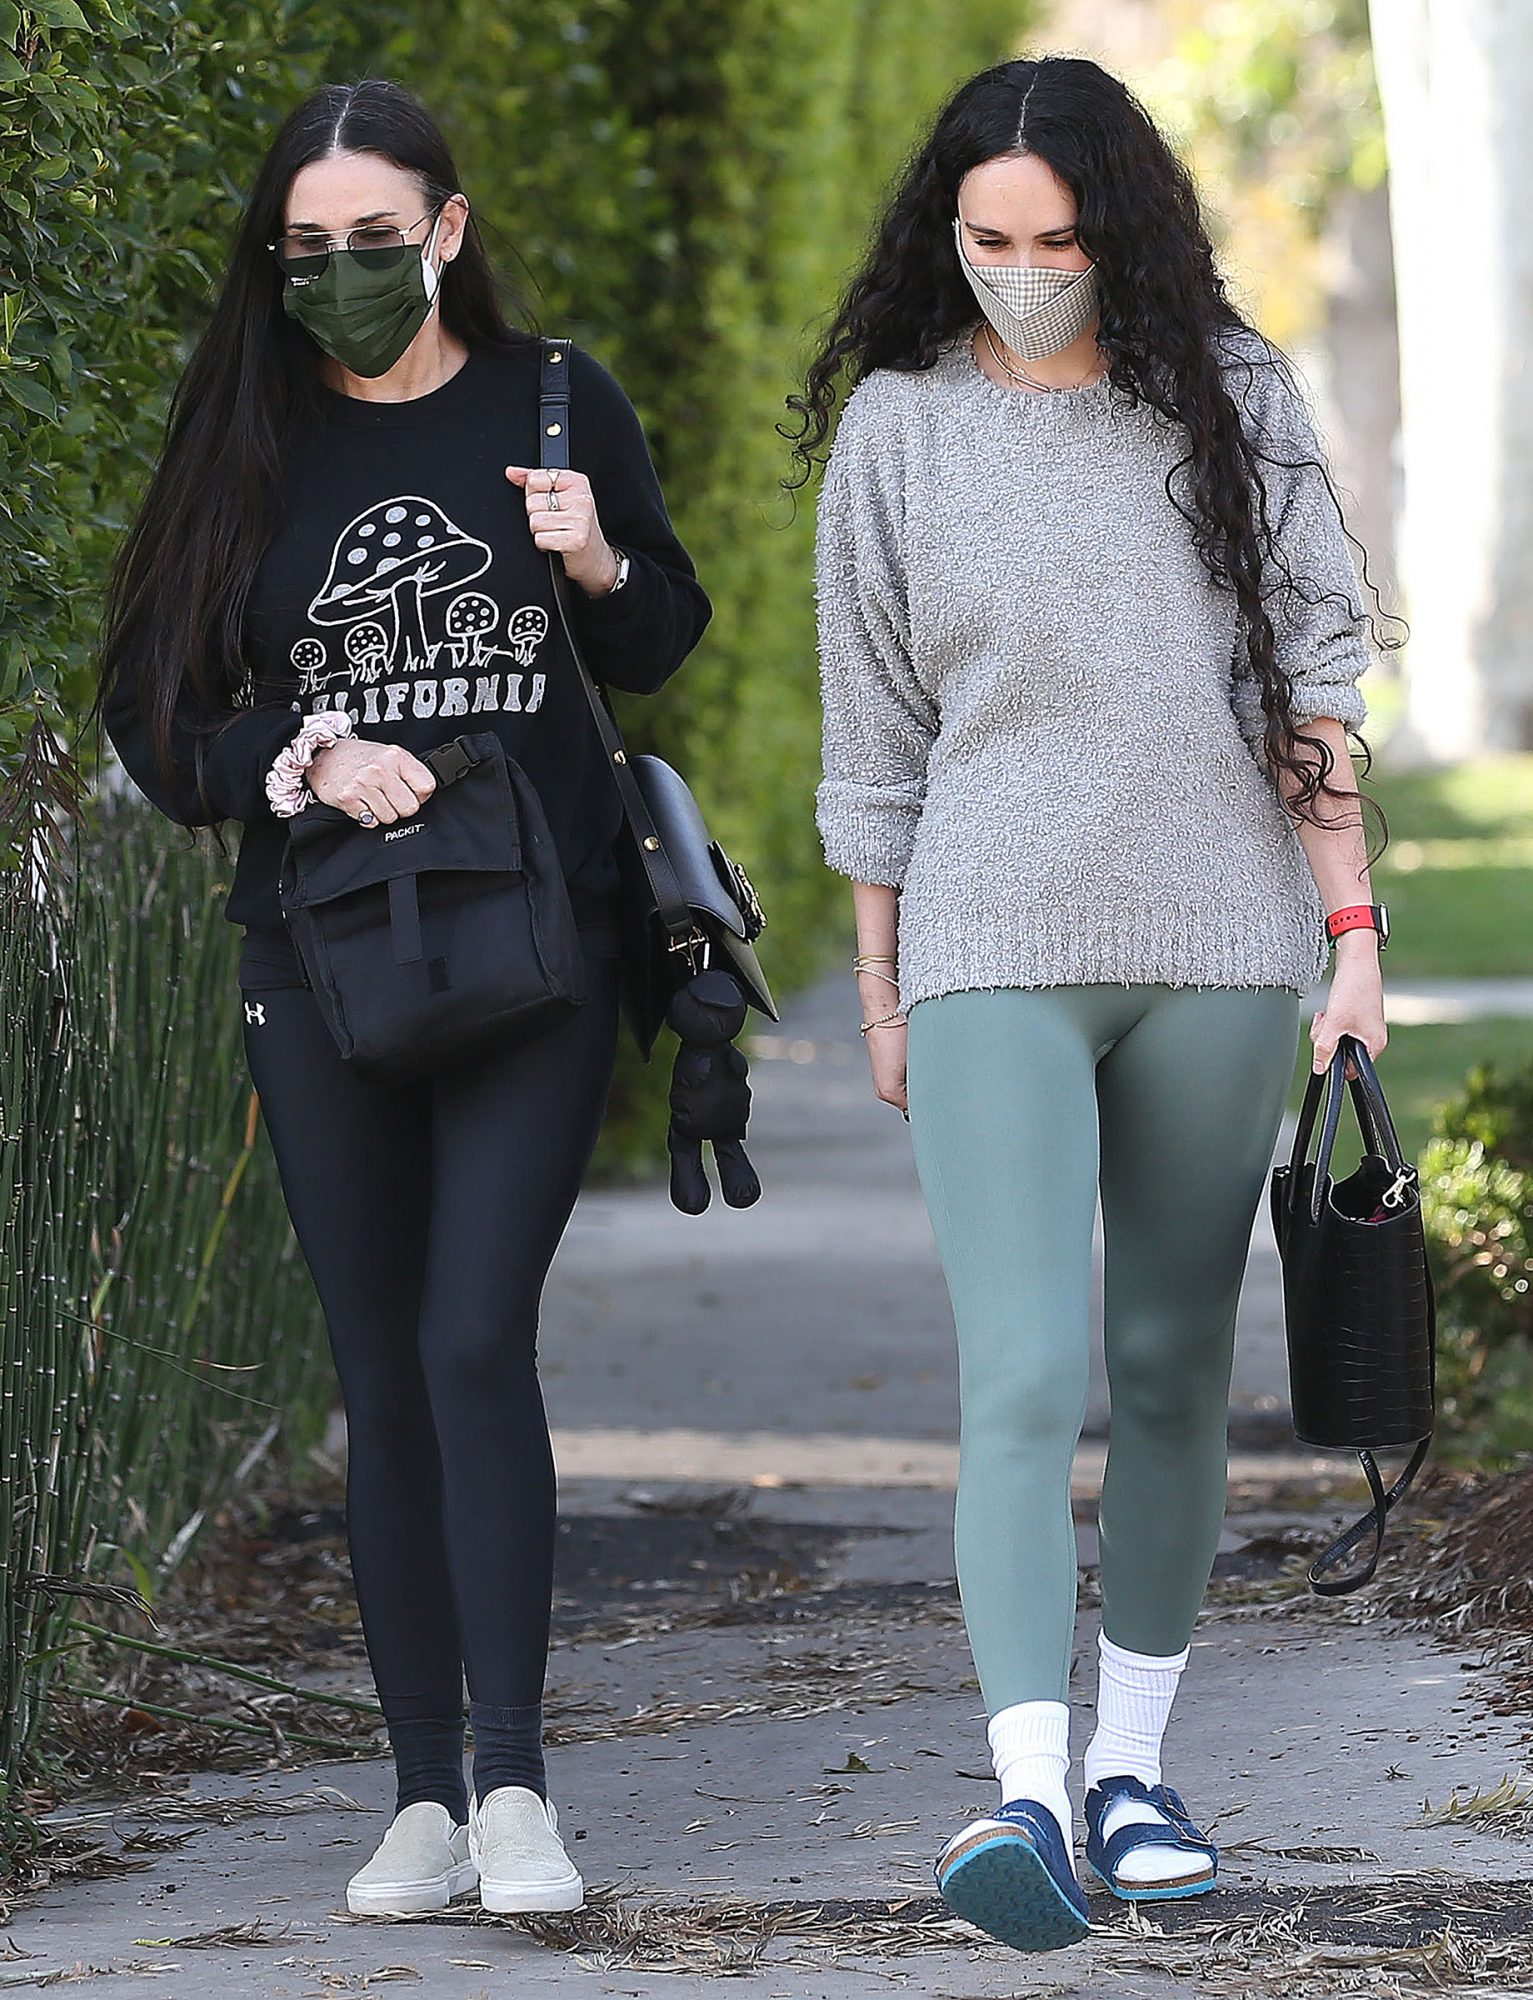 Rumer Willis and Demi Moore leaving pilates classes together in West Hollywood